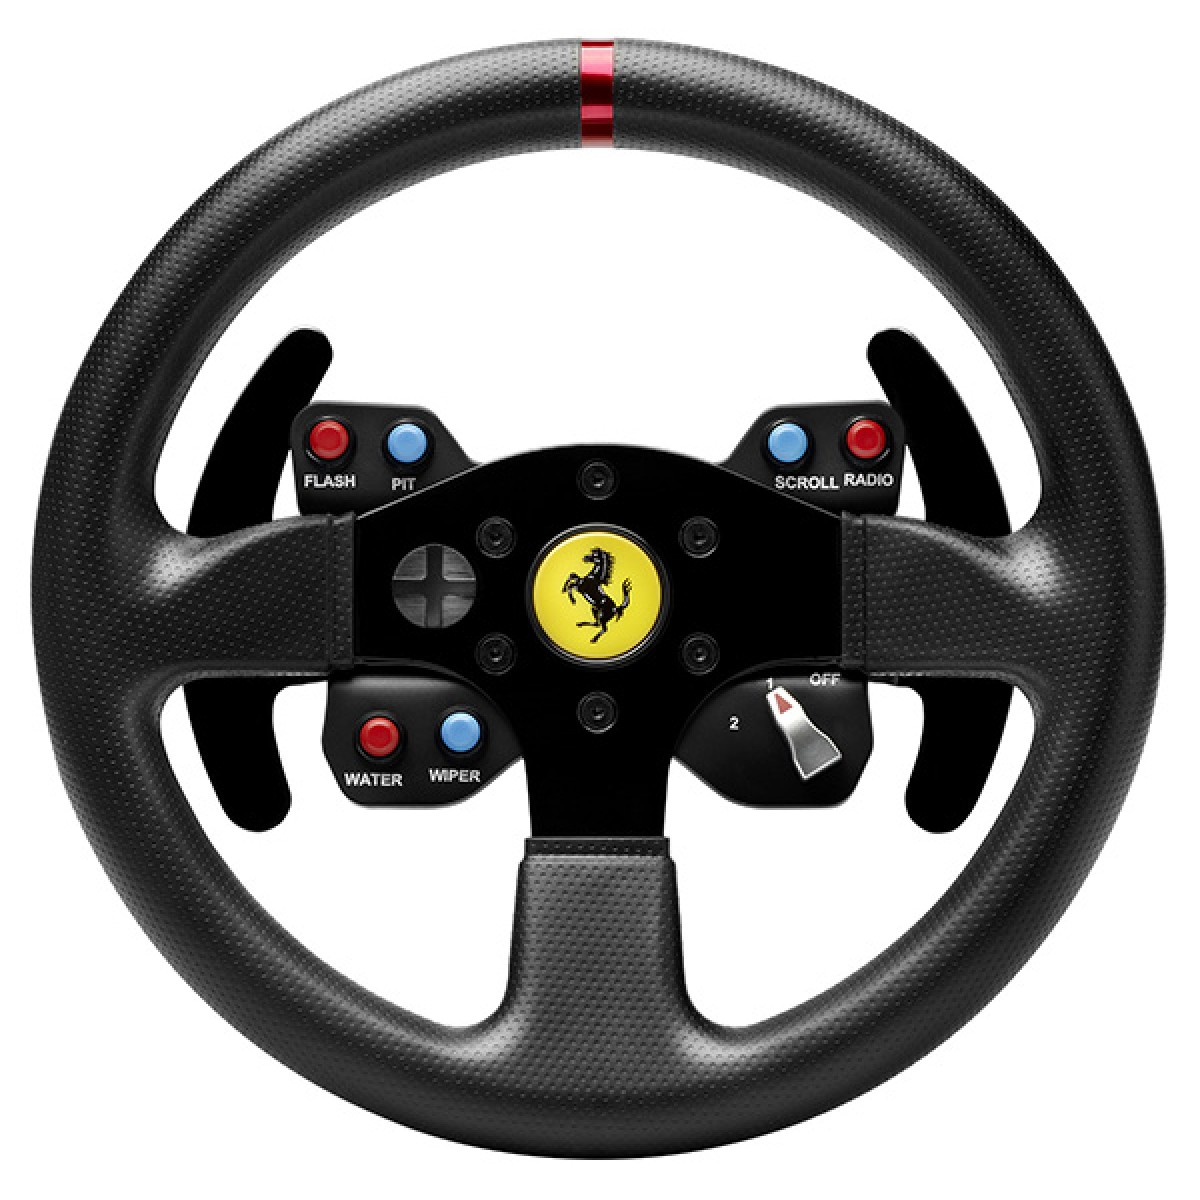 Thrustmaster Ferrari GTE 458 Add-On Wheel - pour T500 et TX wheel  (PC, PS3, PS4, Xbox One)